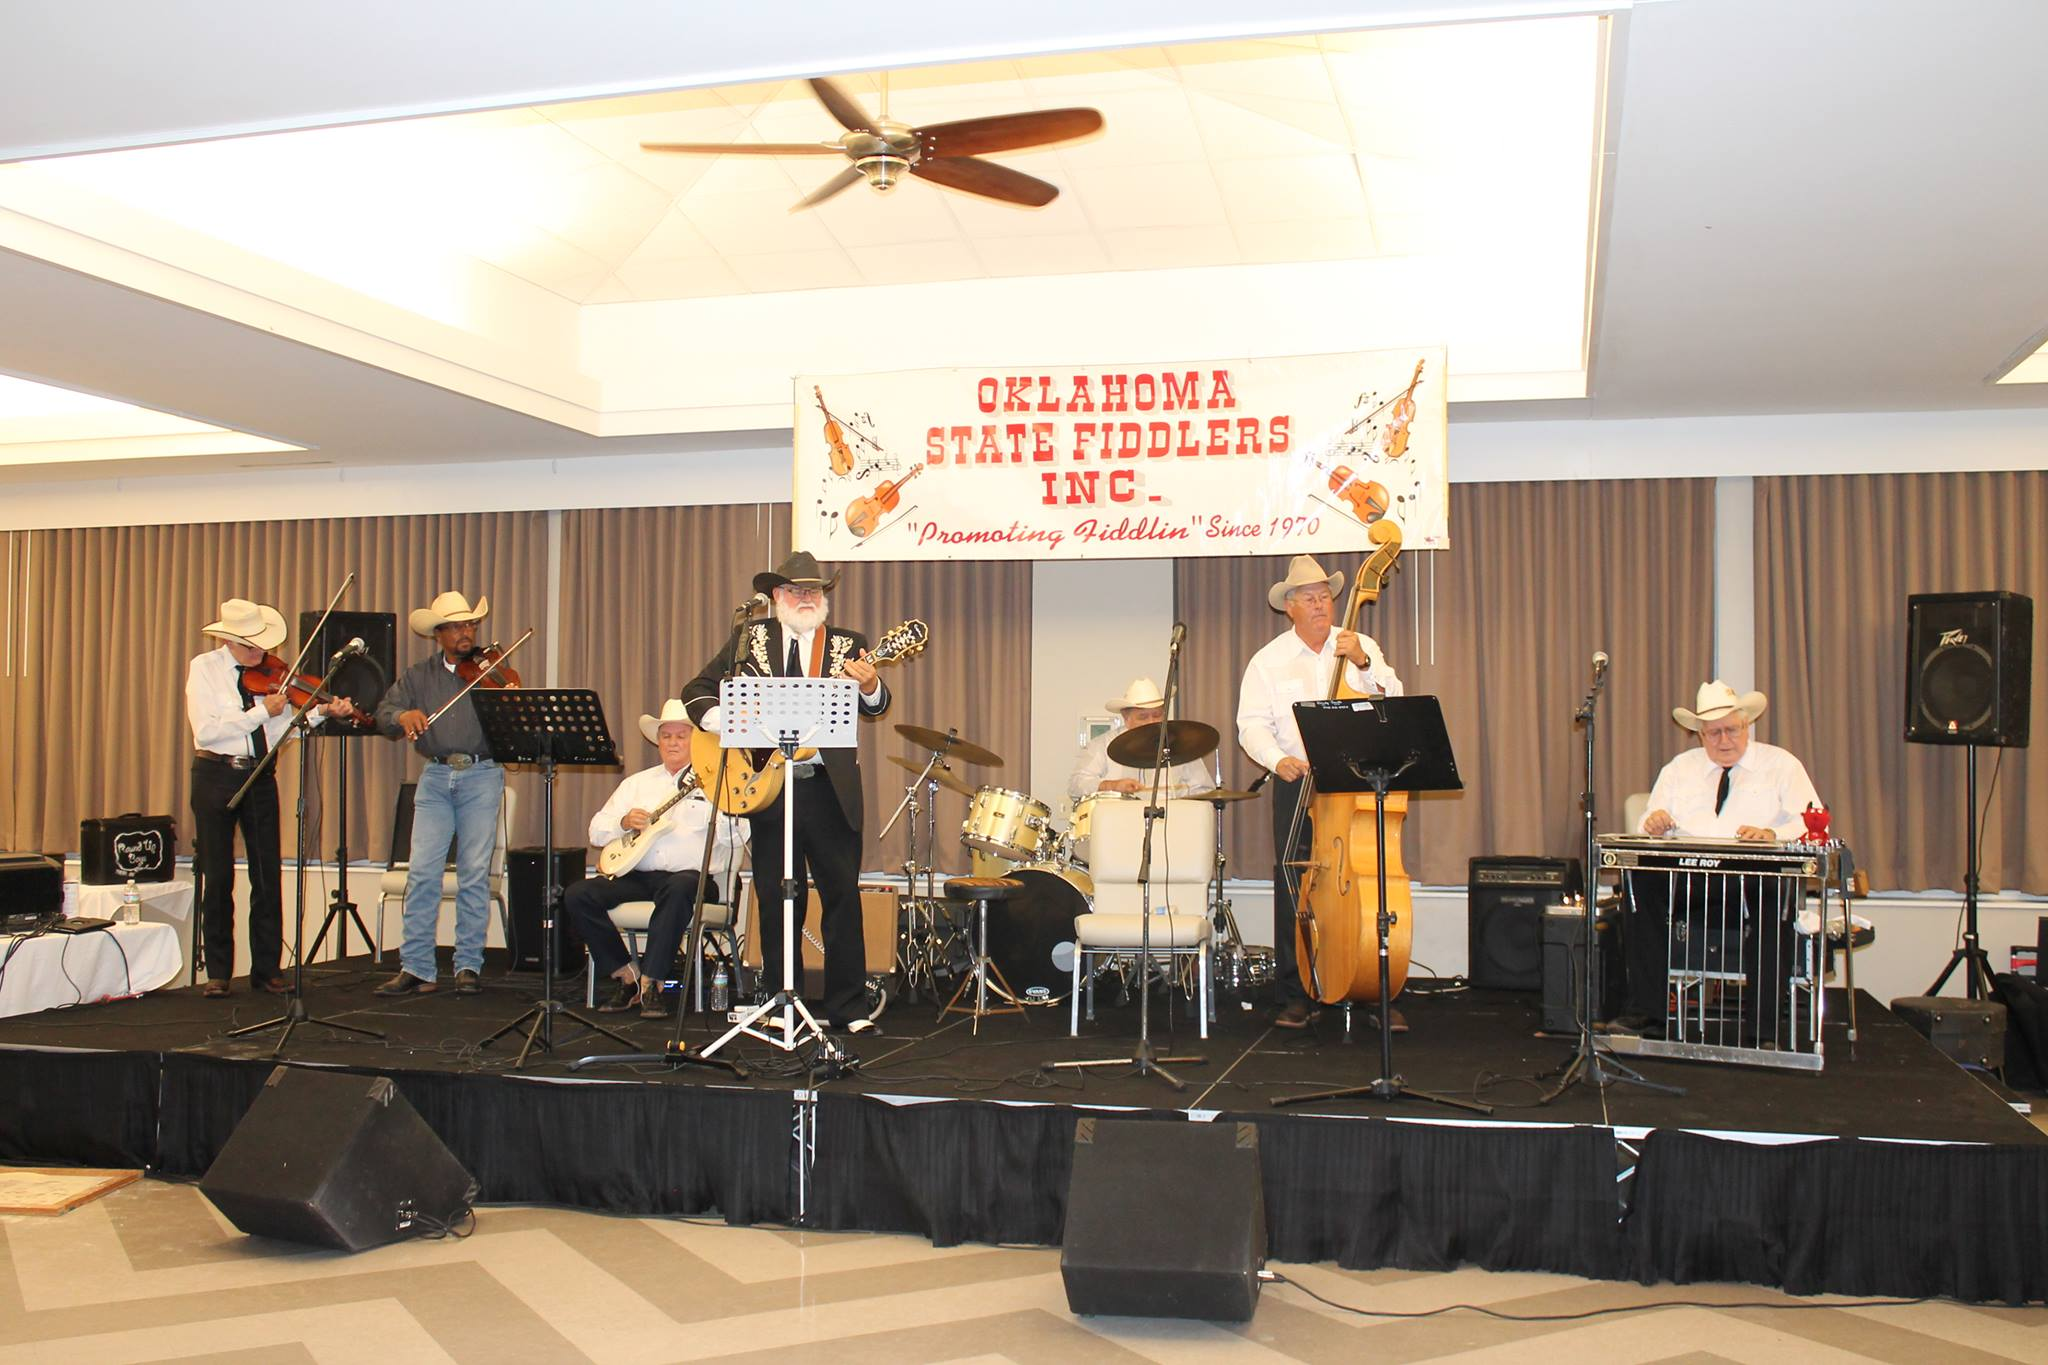 Oklahoma State Fiddlers Convention 2018